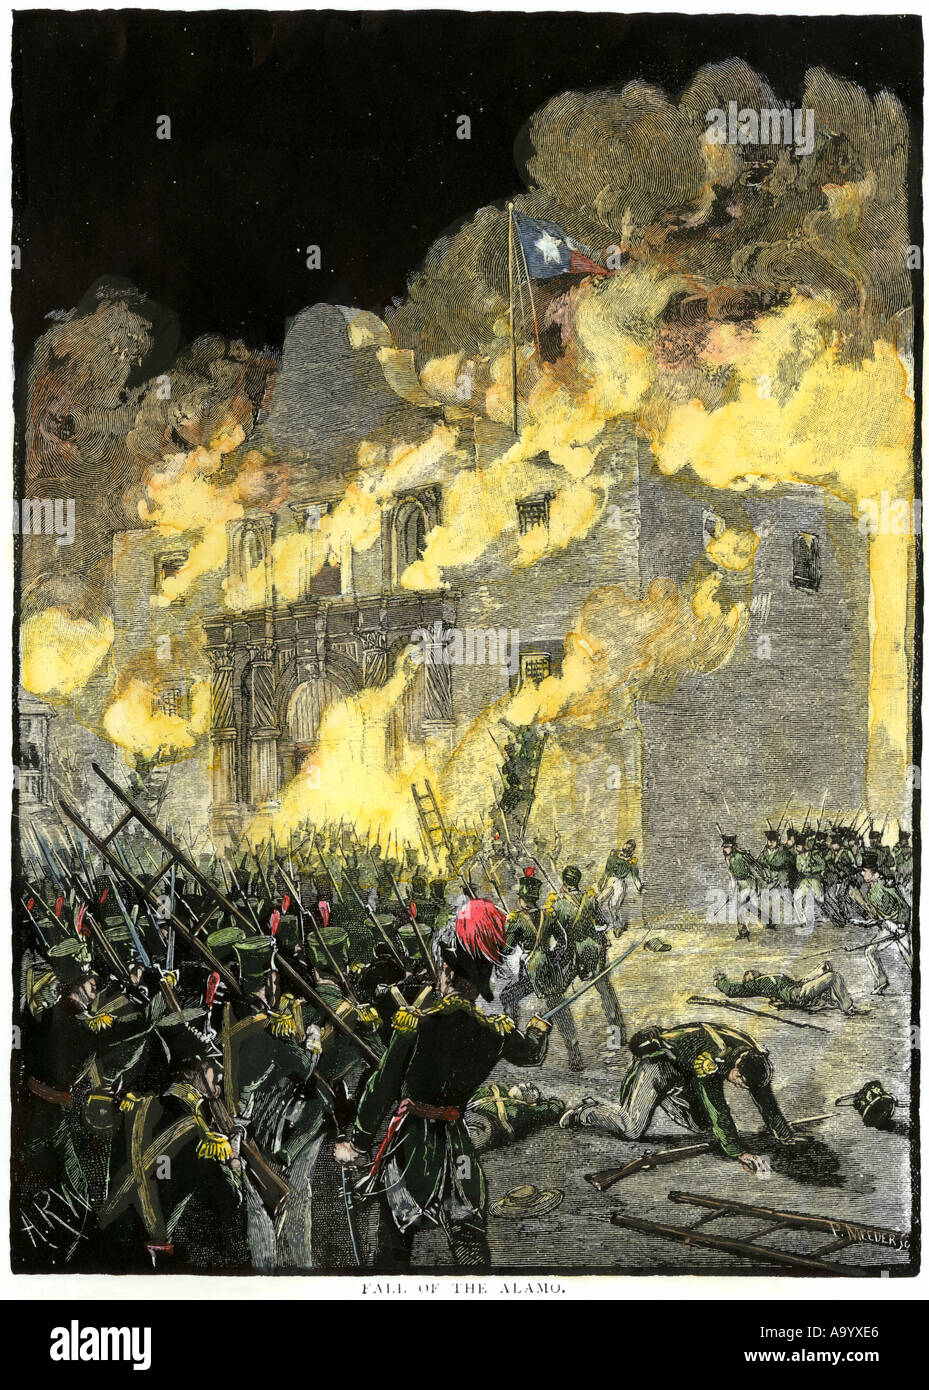 Fall of the Alamo to Santa Anna Mexican forces in San Antonio Texas 1836. Hand-colored woodcut - Stock Image